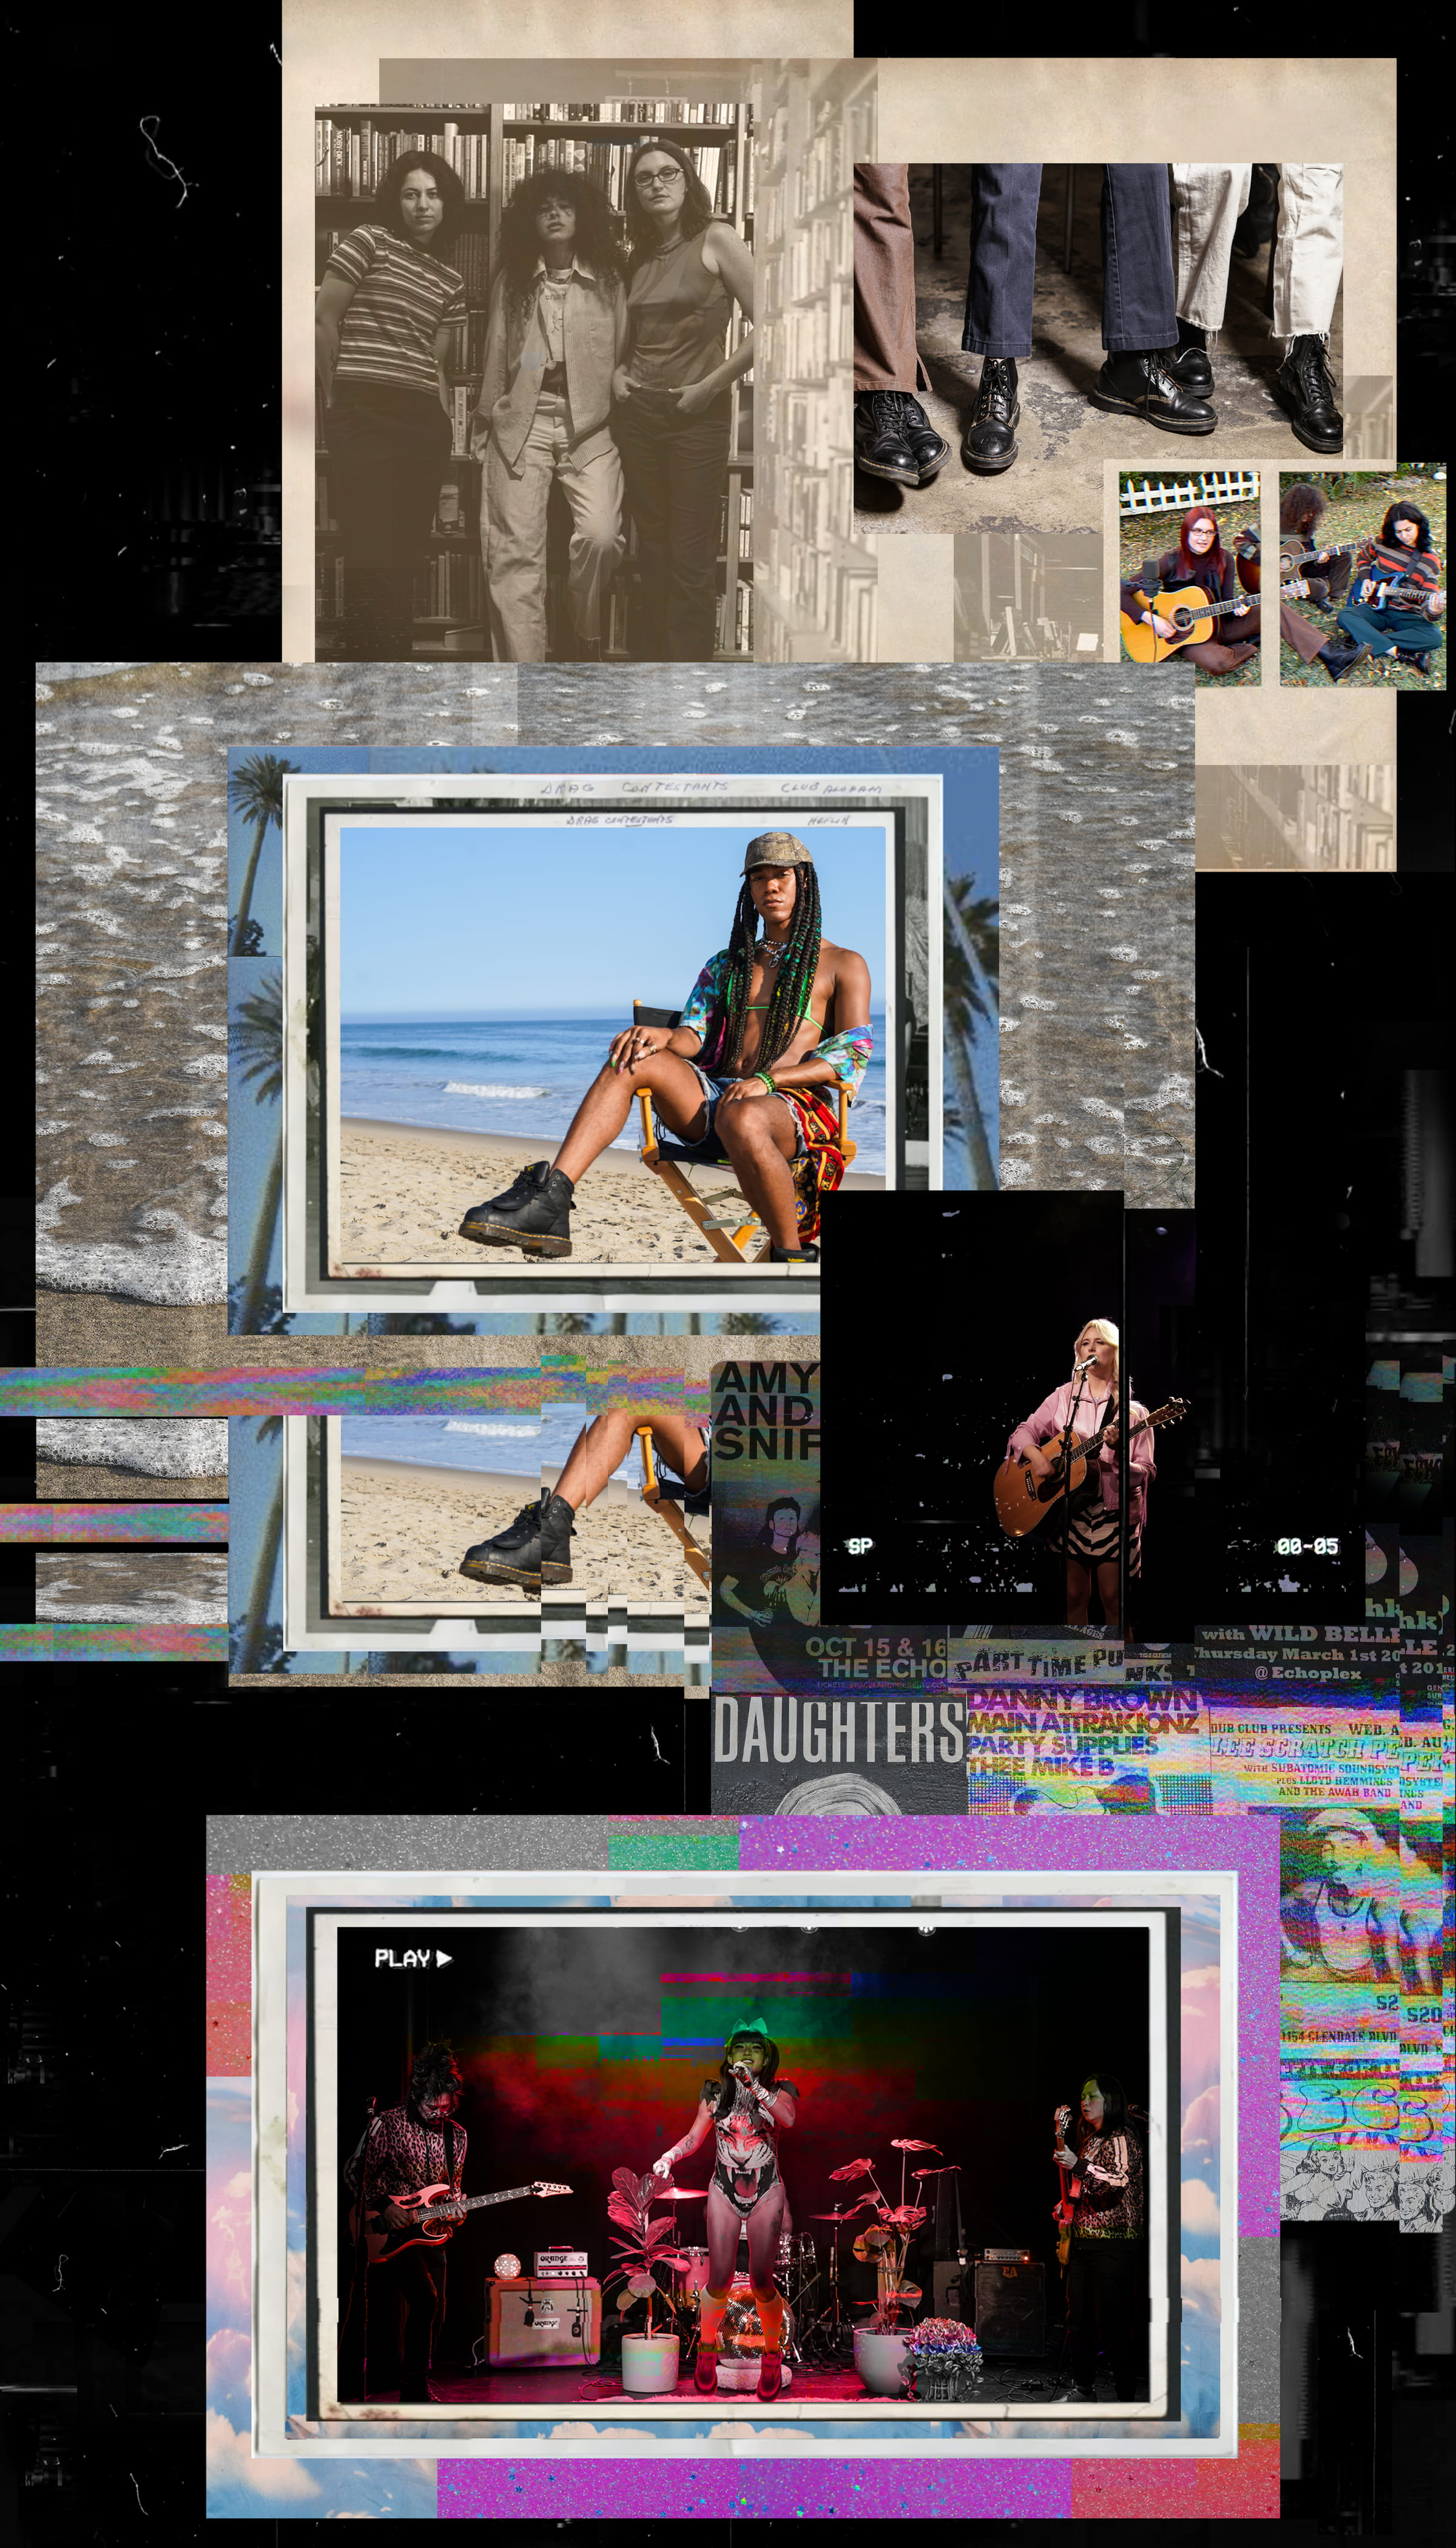 Collages of artists performing and posing, portrayed with a glitchy 90's aesthetic